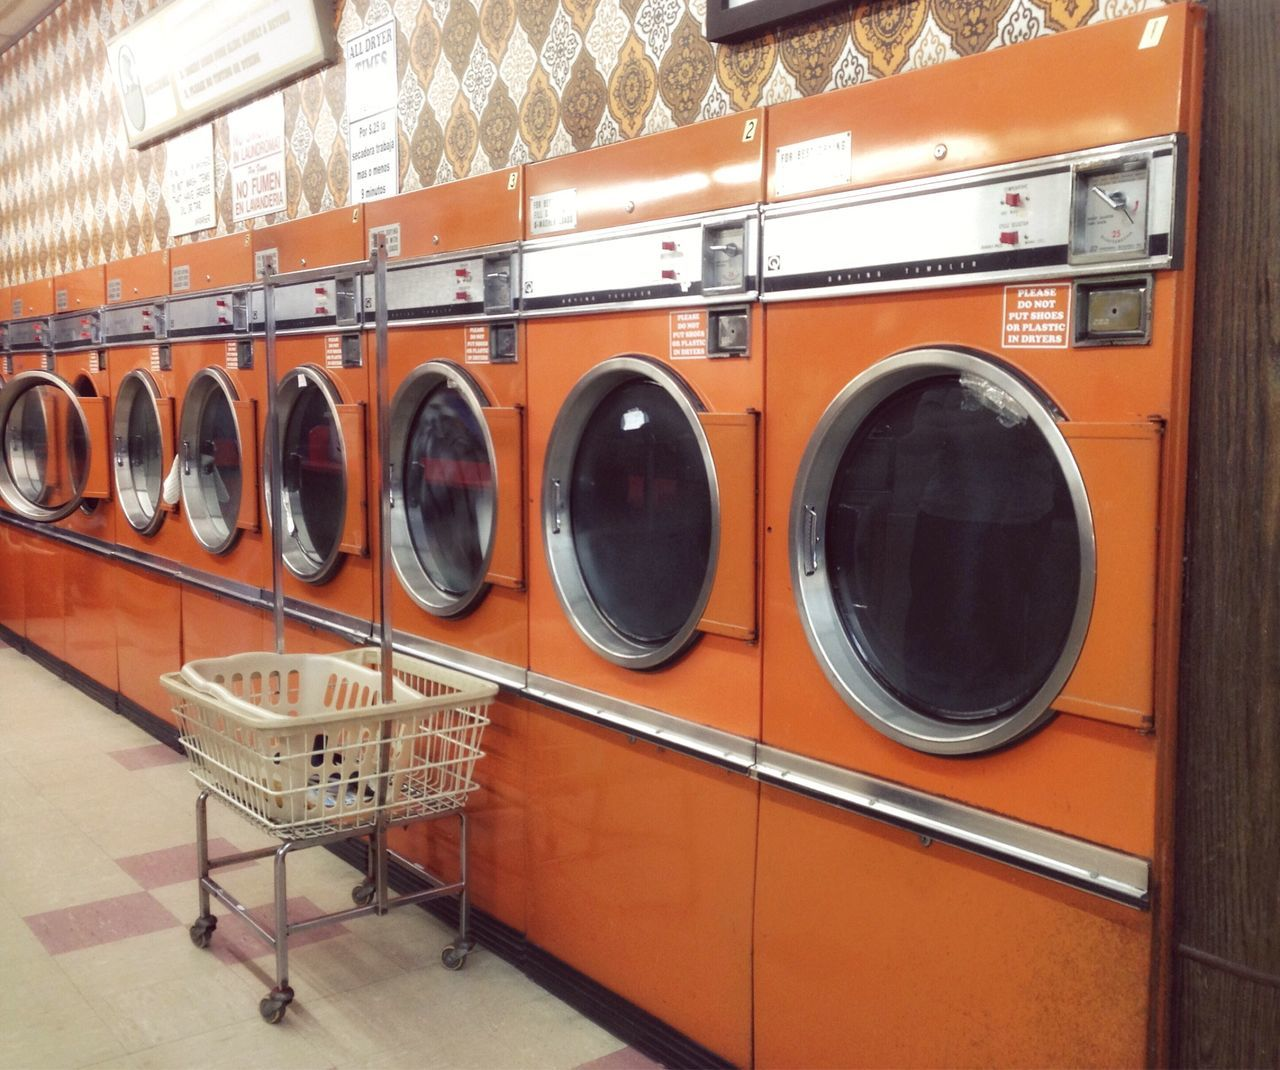 washing machine, laundry, laundromat, dryer, indoors, machinery, no people, convenience, drying, day, close-up